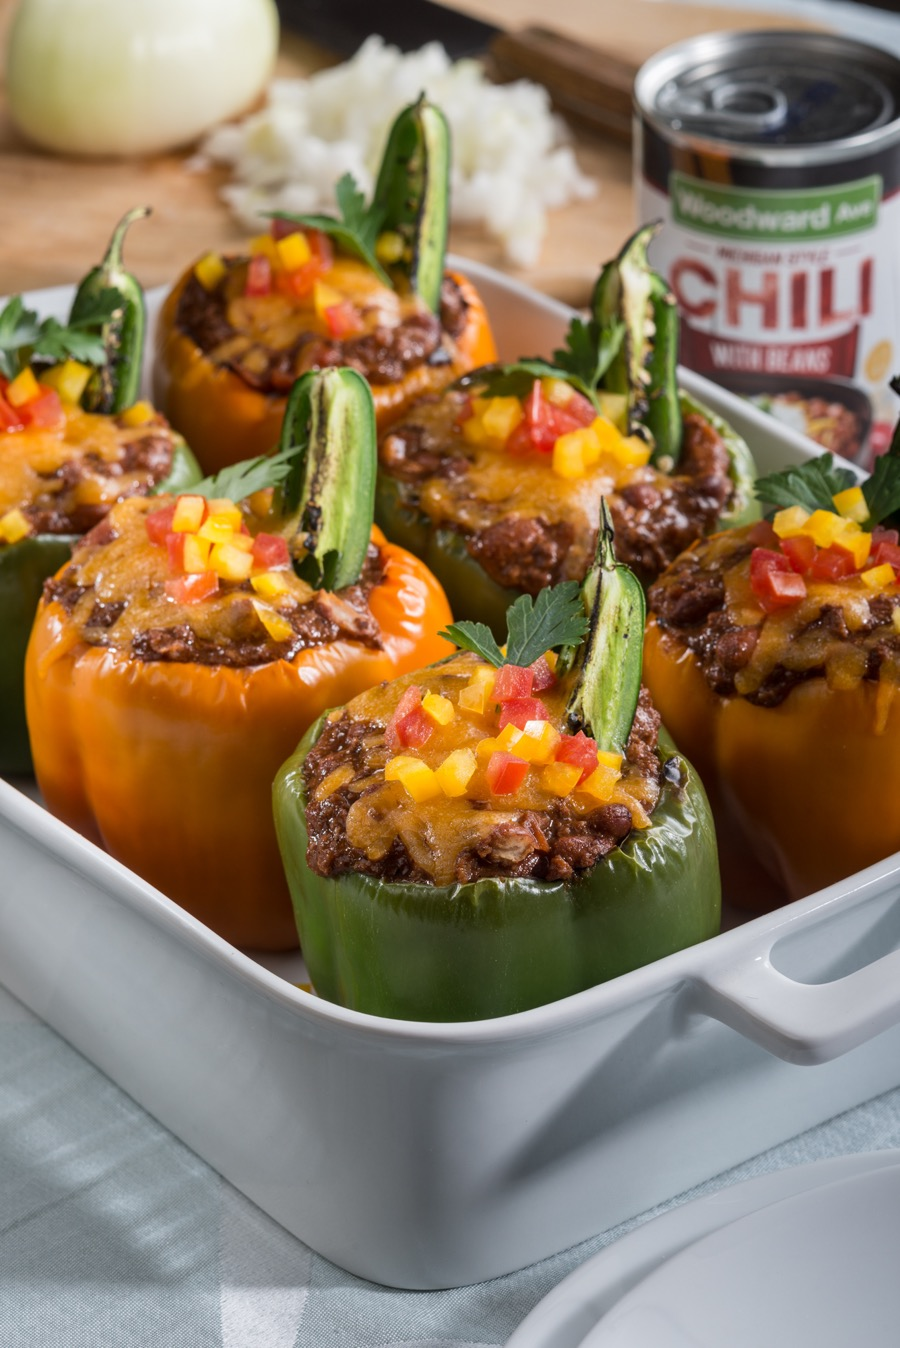 chili-stuffed-bell-peppers-2